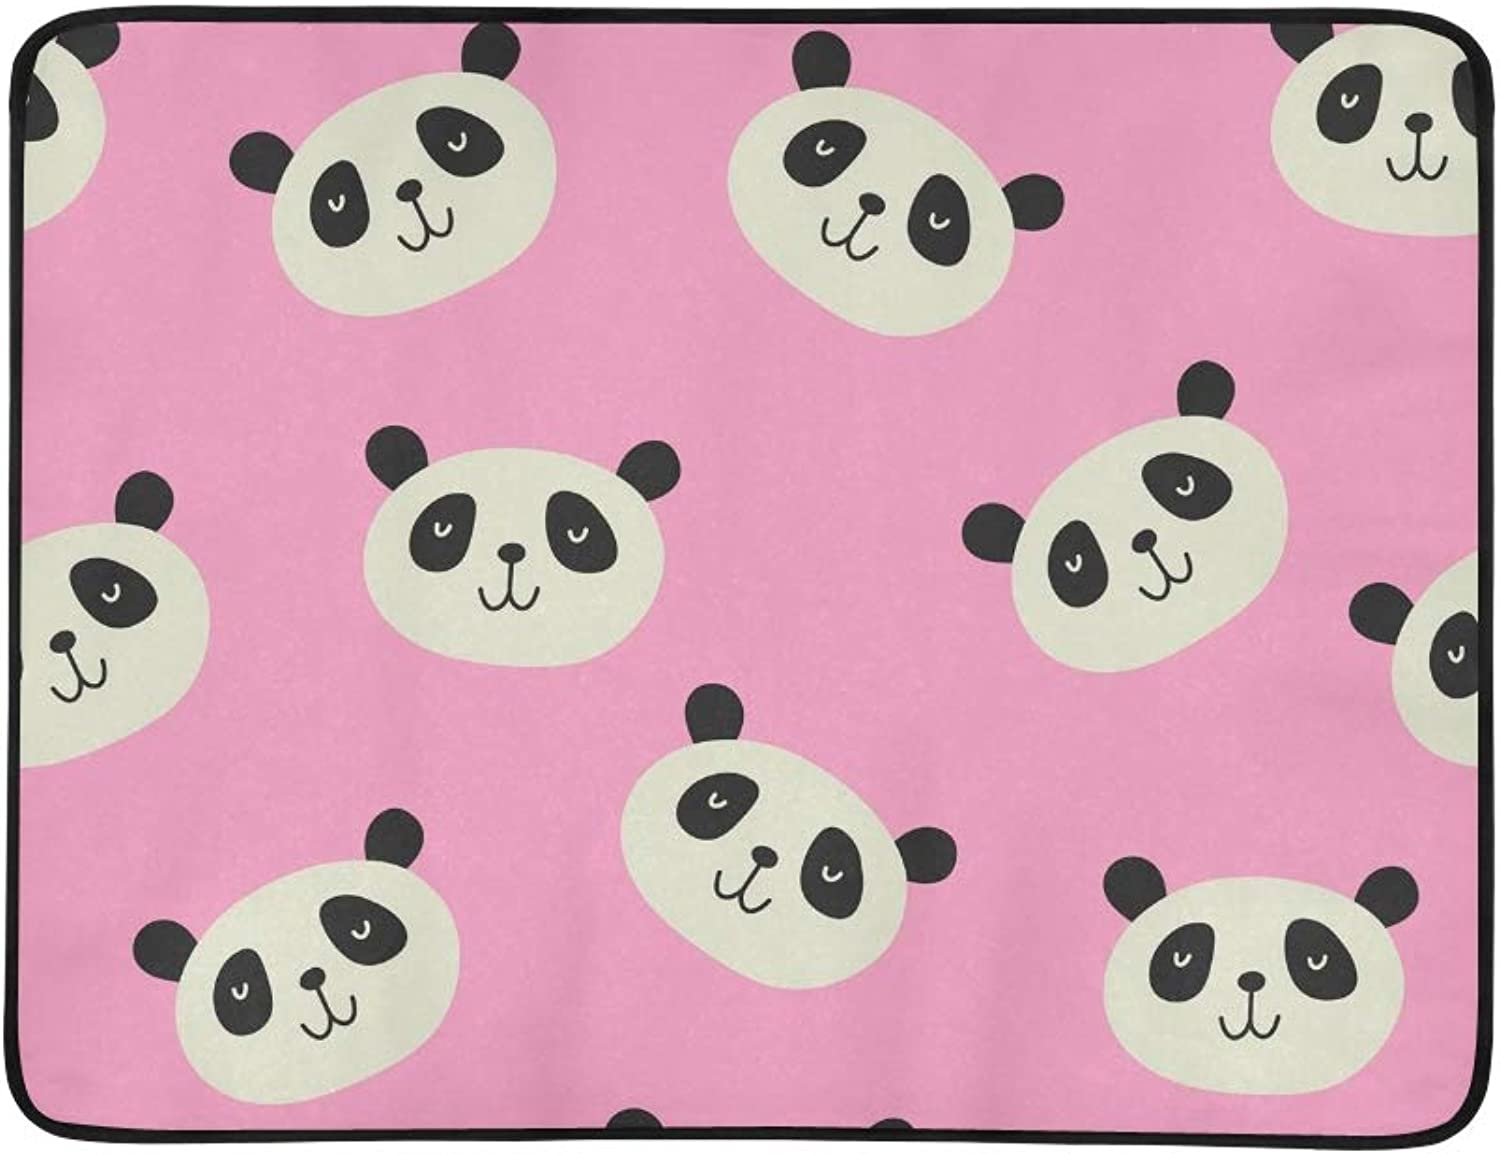 Panda Print Portable and Foldable Blanket Mat 60x78 Inch Handy Mat for Camping Picnic Beach Indoor Outdoor Travel